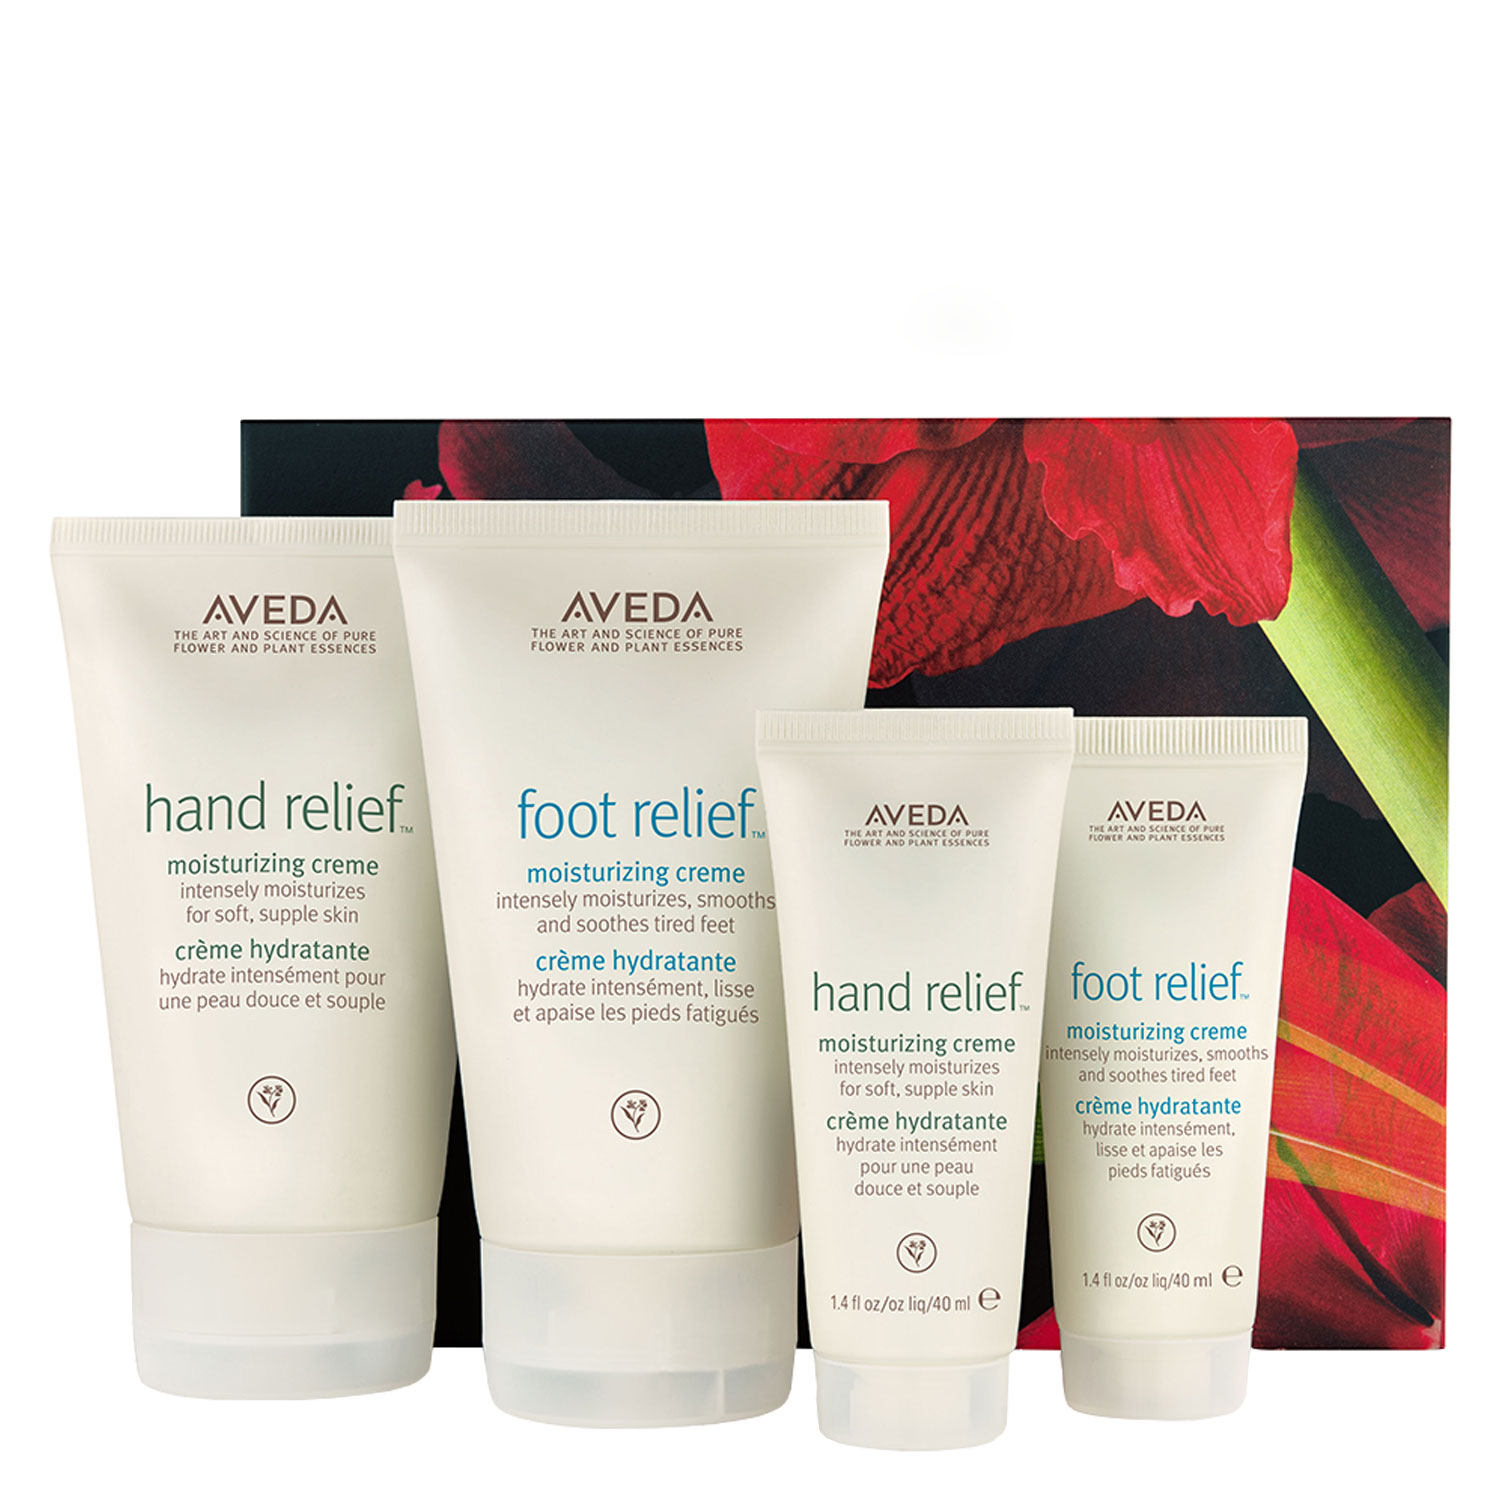 aveda specials - hand & foot relief home & travel hydration set